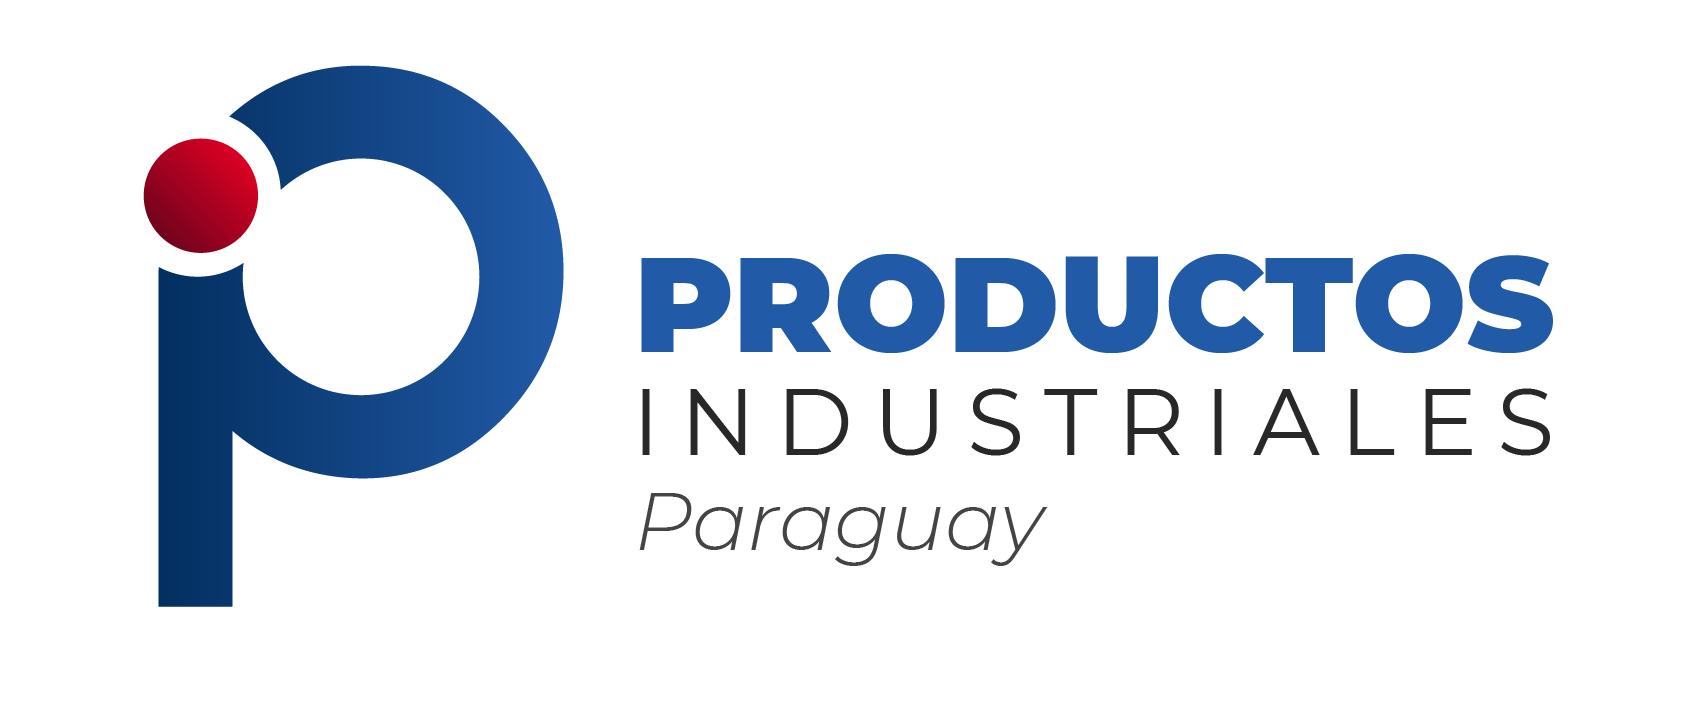 Productos Industriales Paraguay